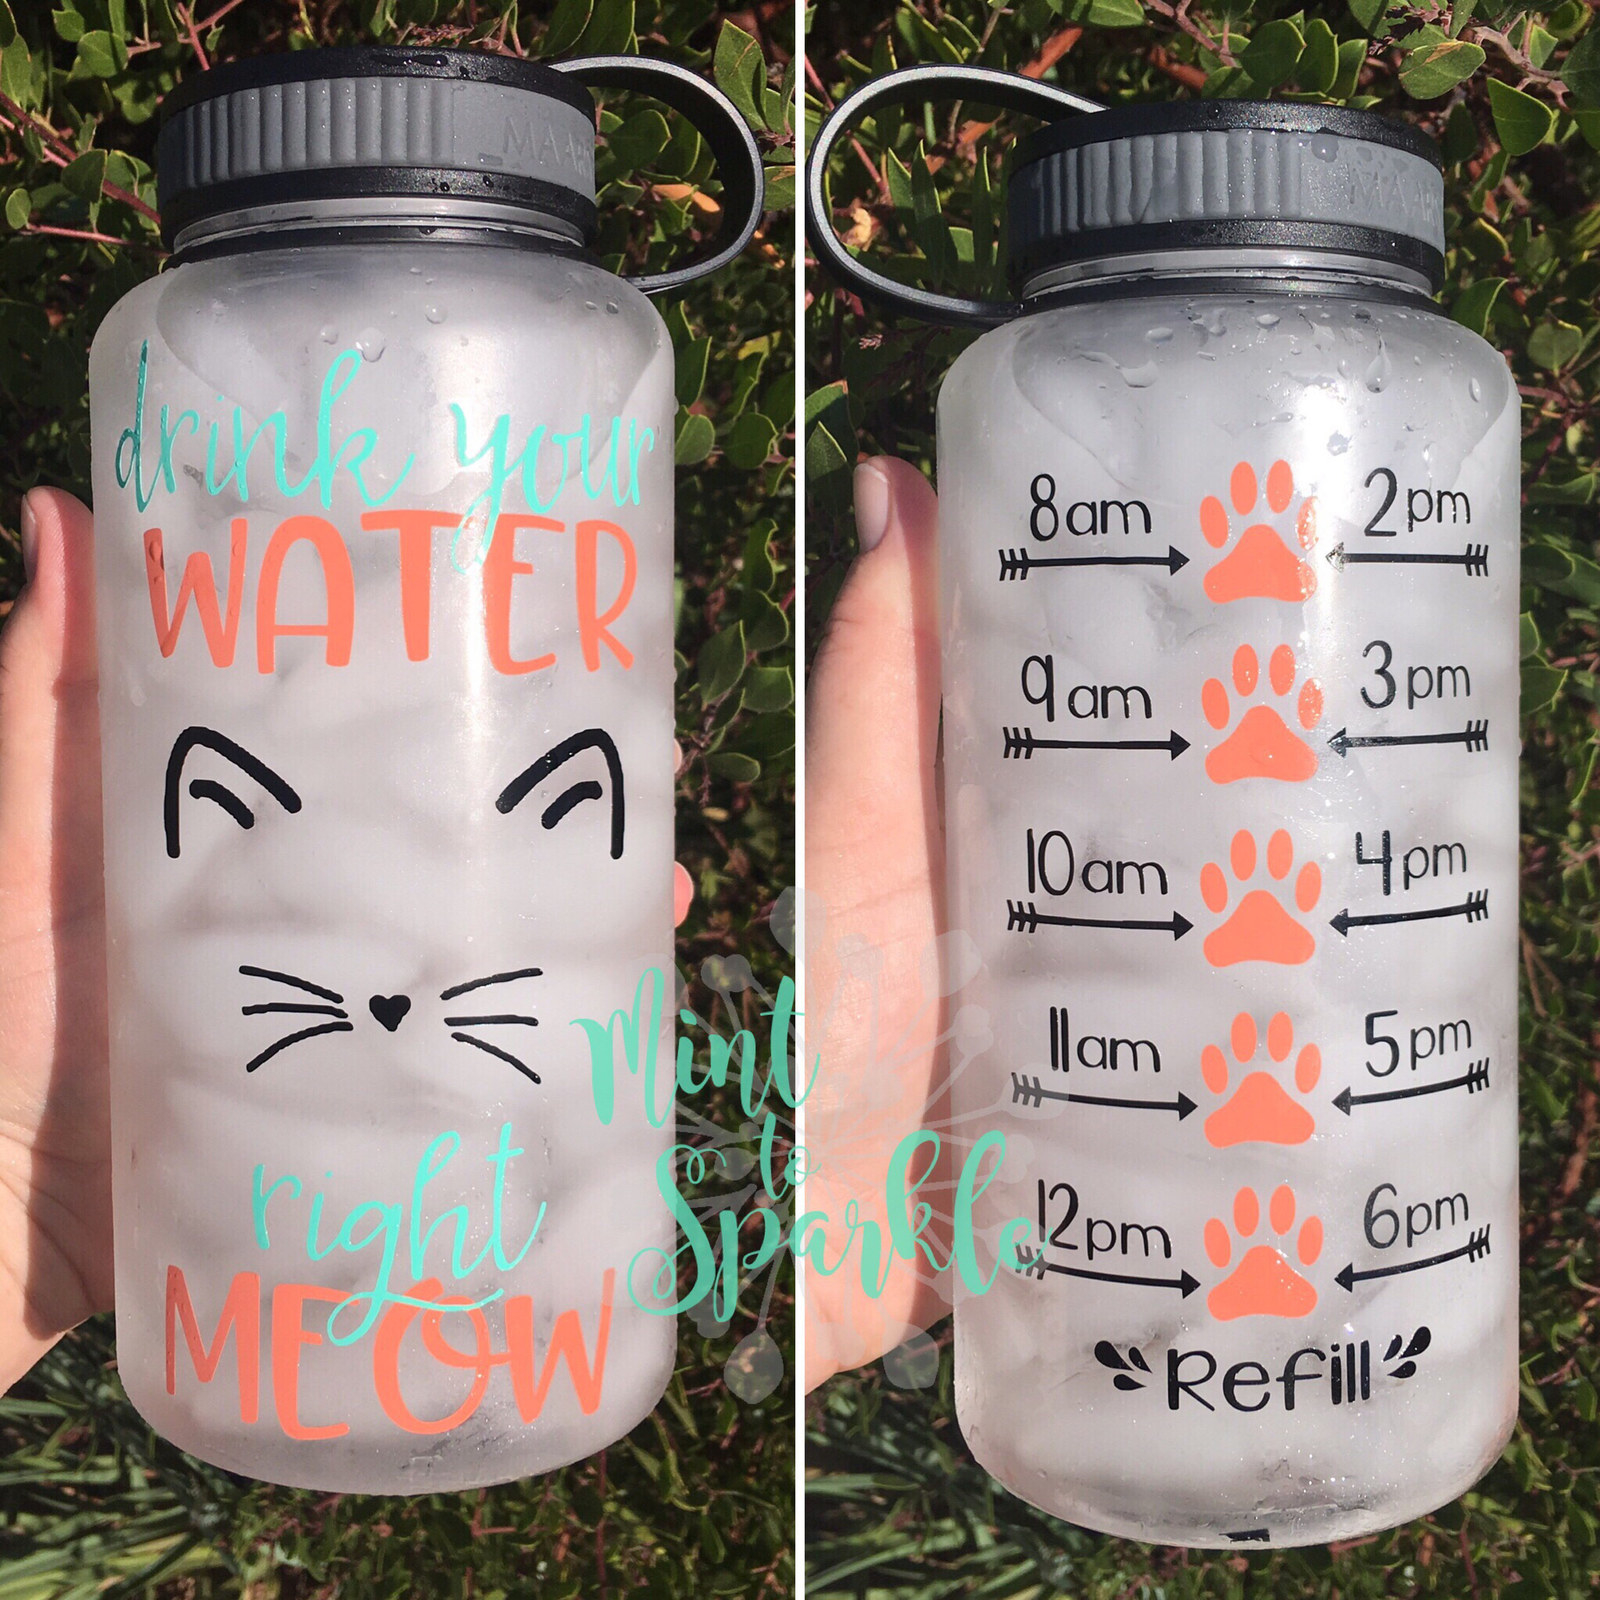 da4513d349 A motivational water bottle to encourage you to drink water according to  the schedule.